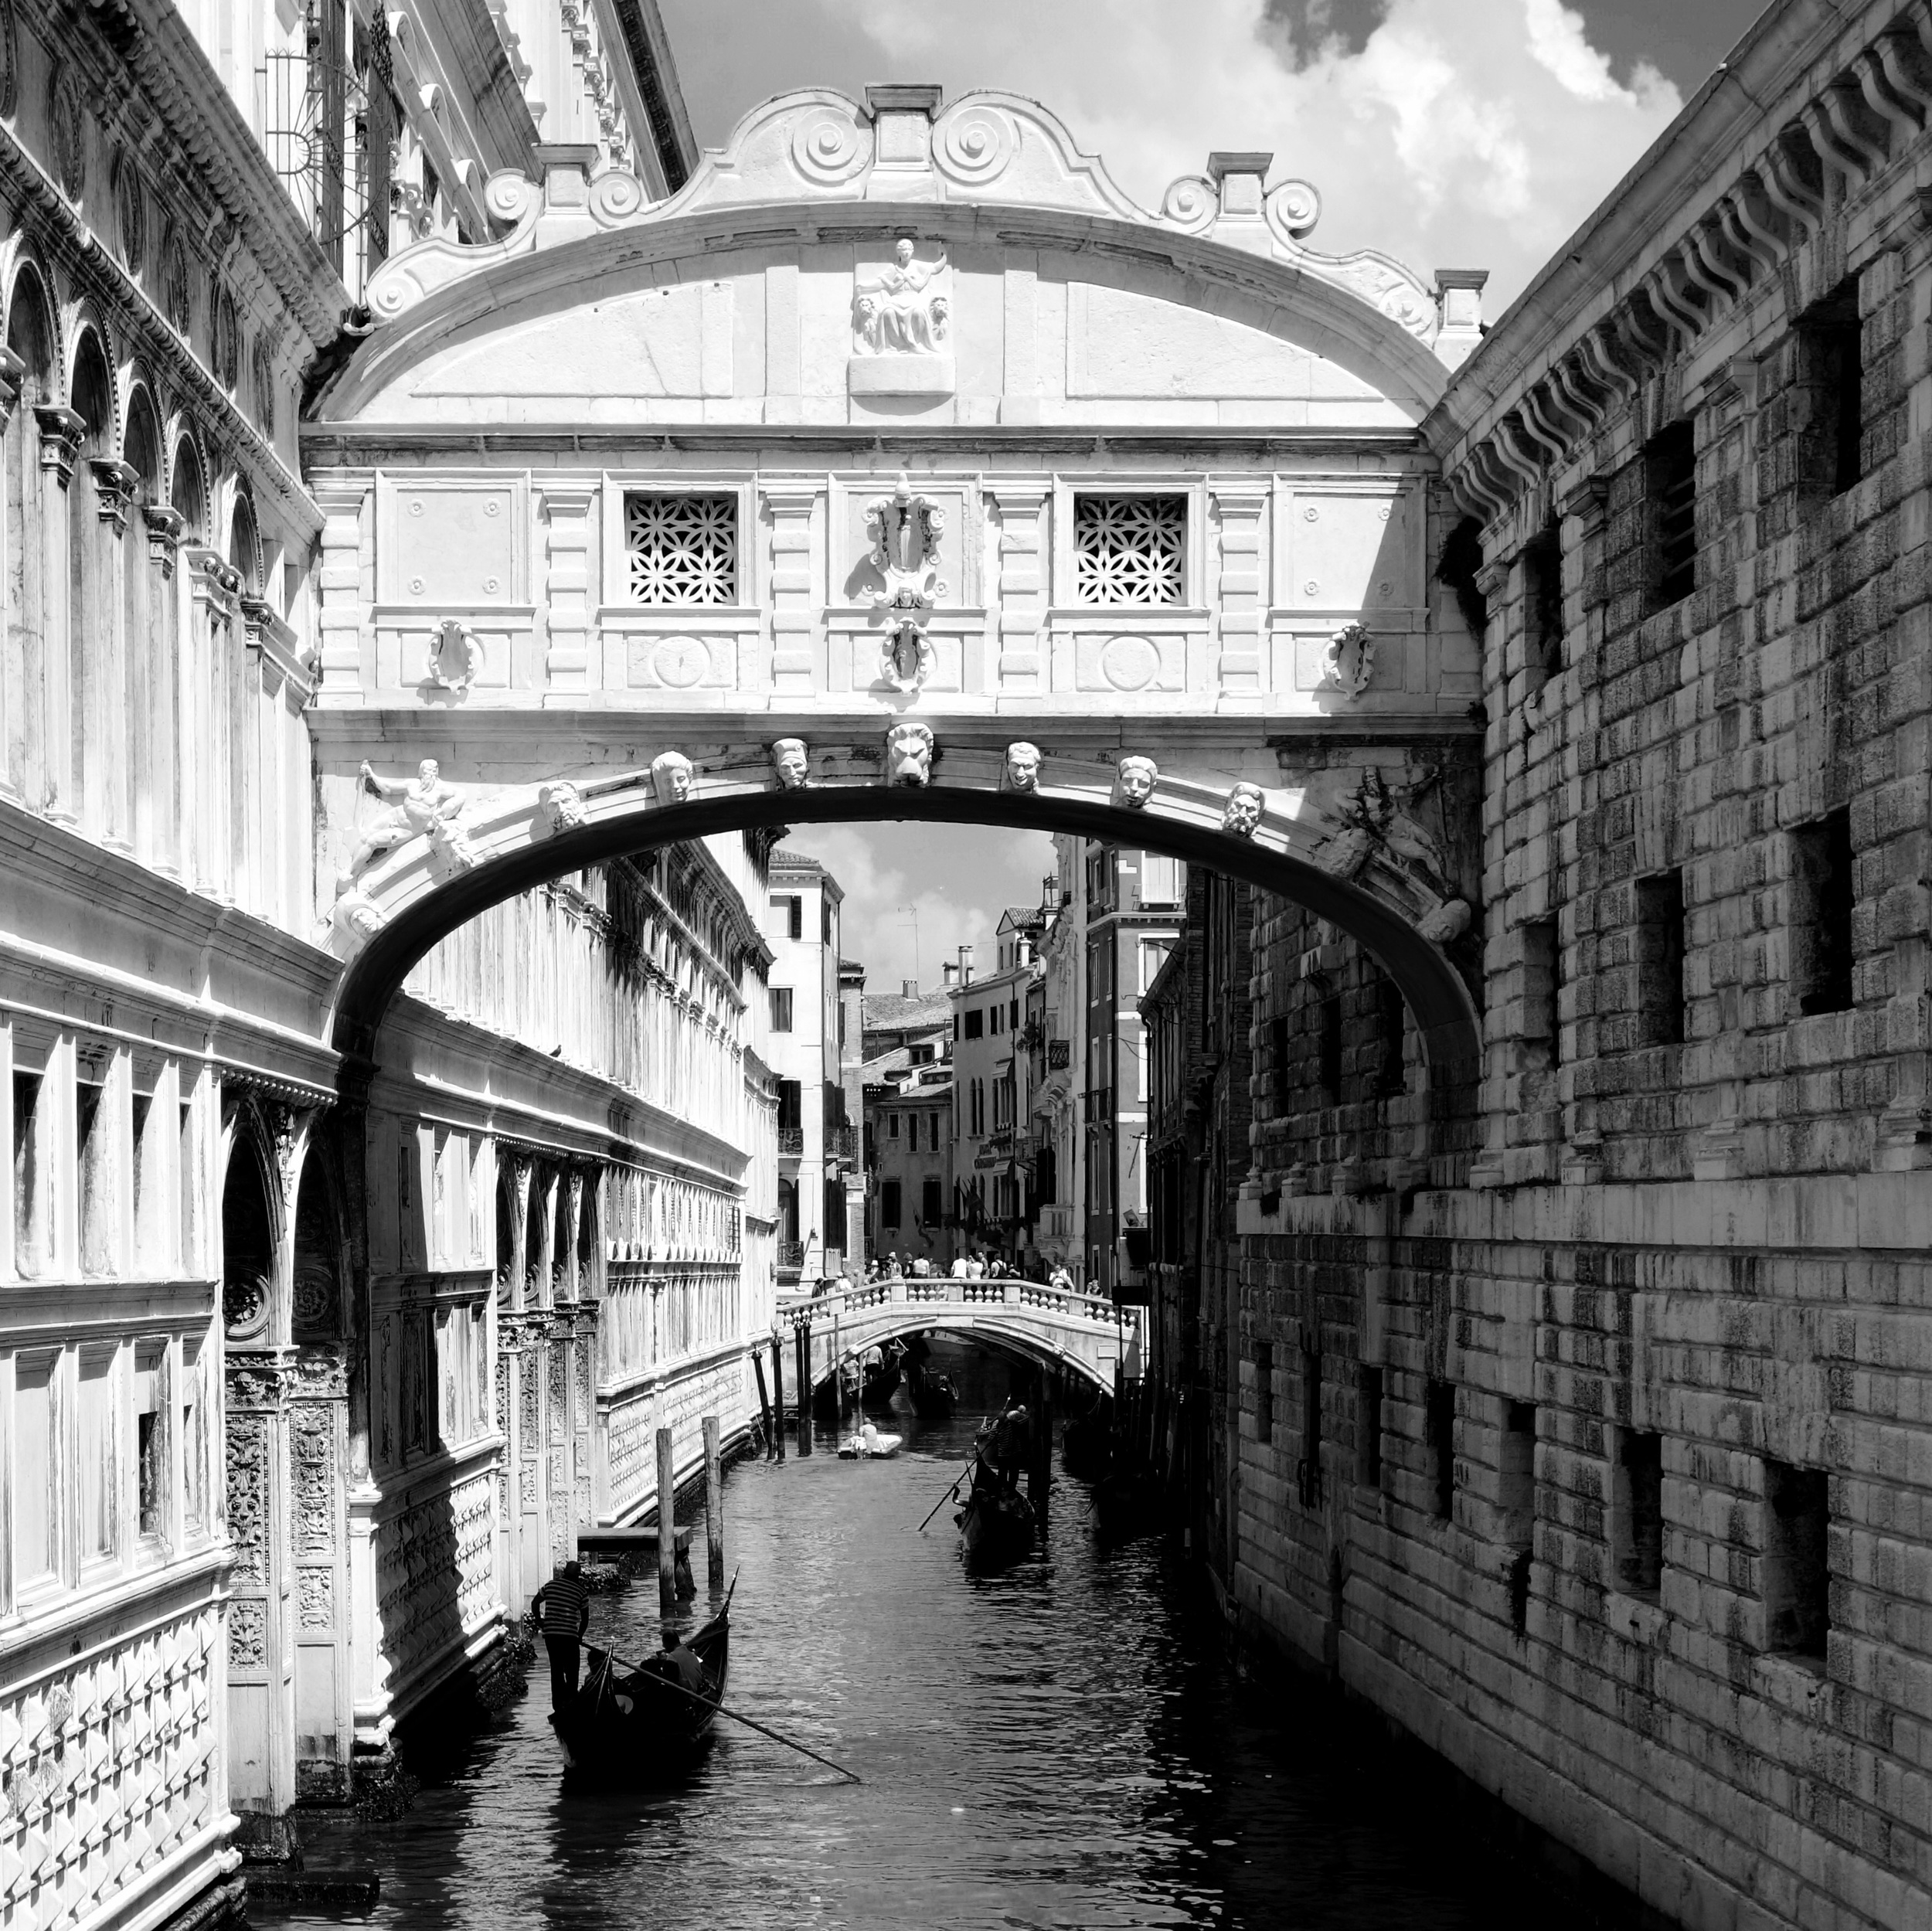 Bridge of Sighs; (cc) by-nc squics.com